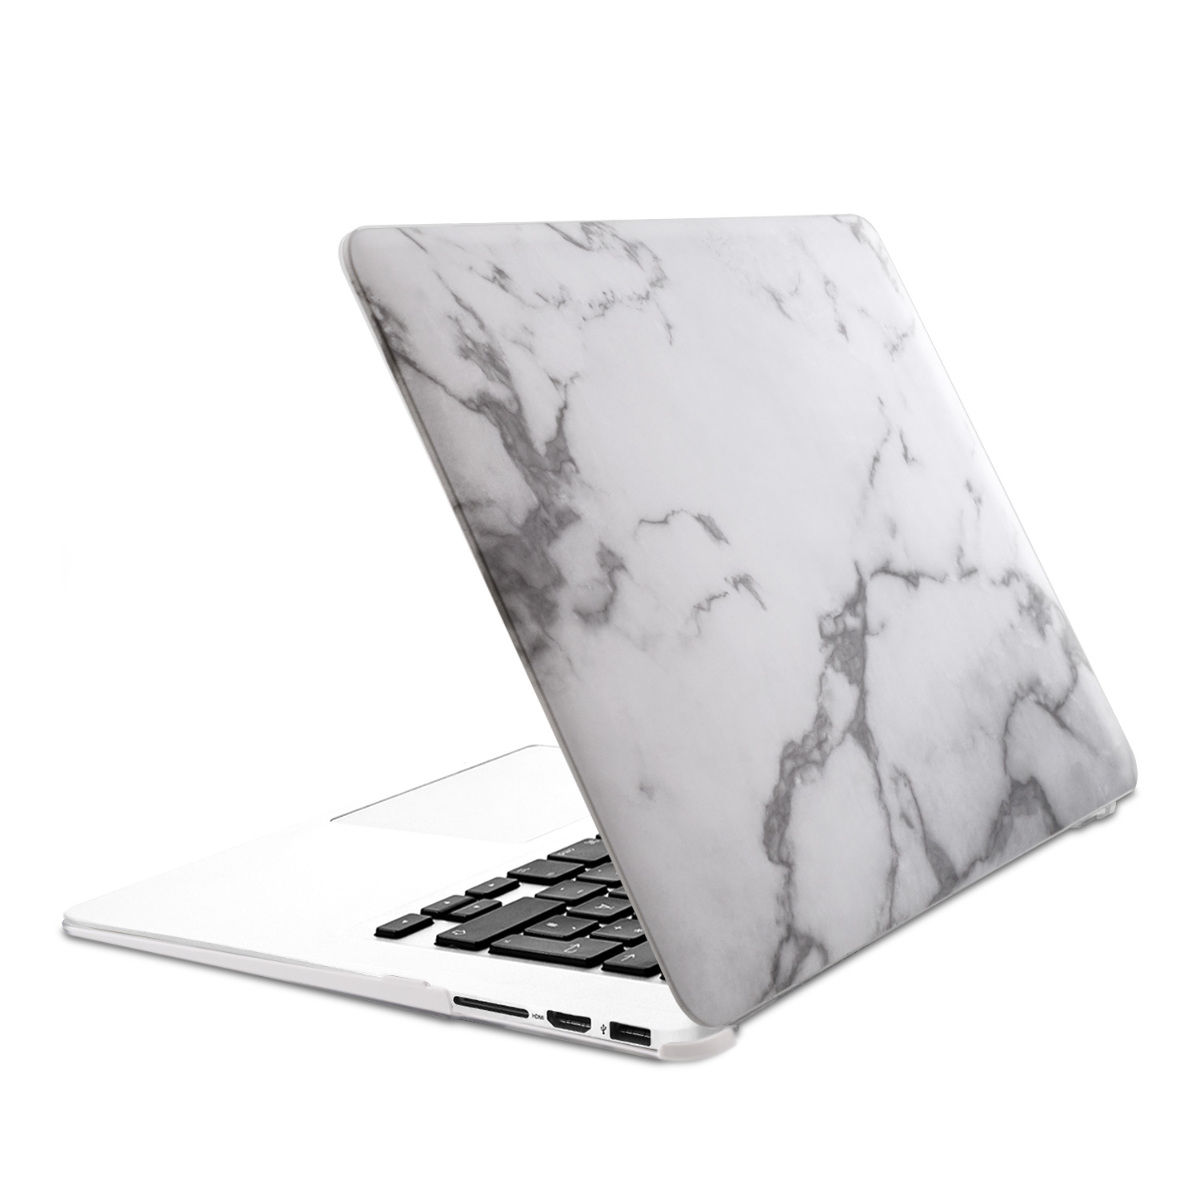 CARCASA-PARA-APPLE-MACBOOK-AIR-13-A-PARTIR-DE-MEDIADOS-DE-2011-CARCASA